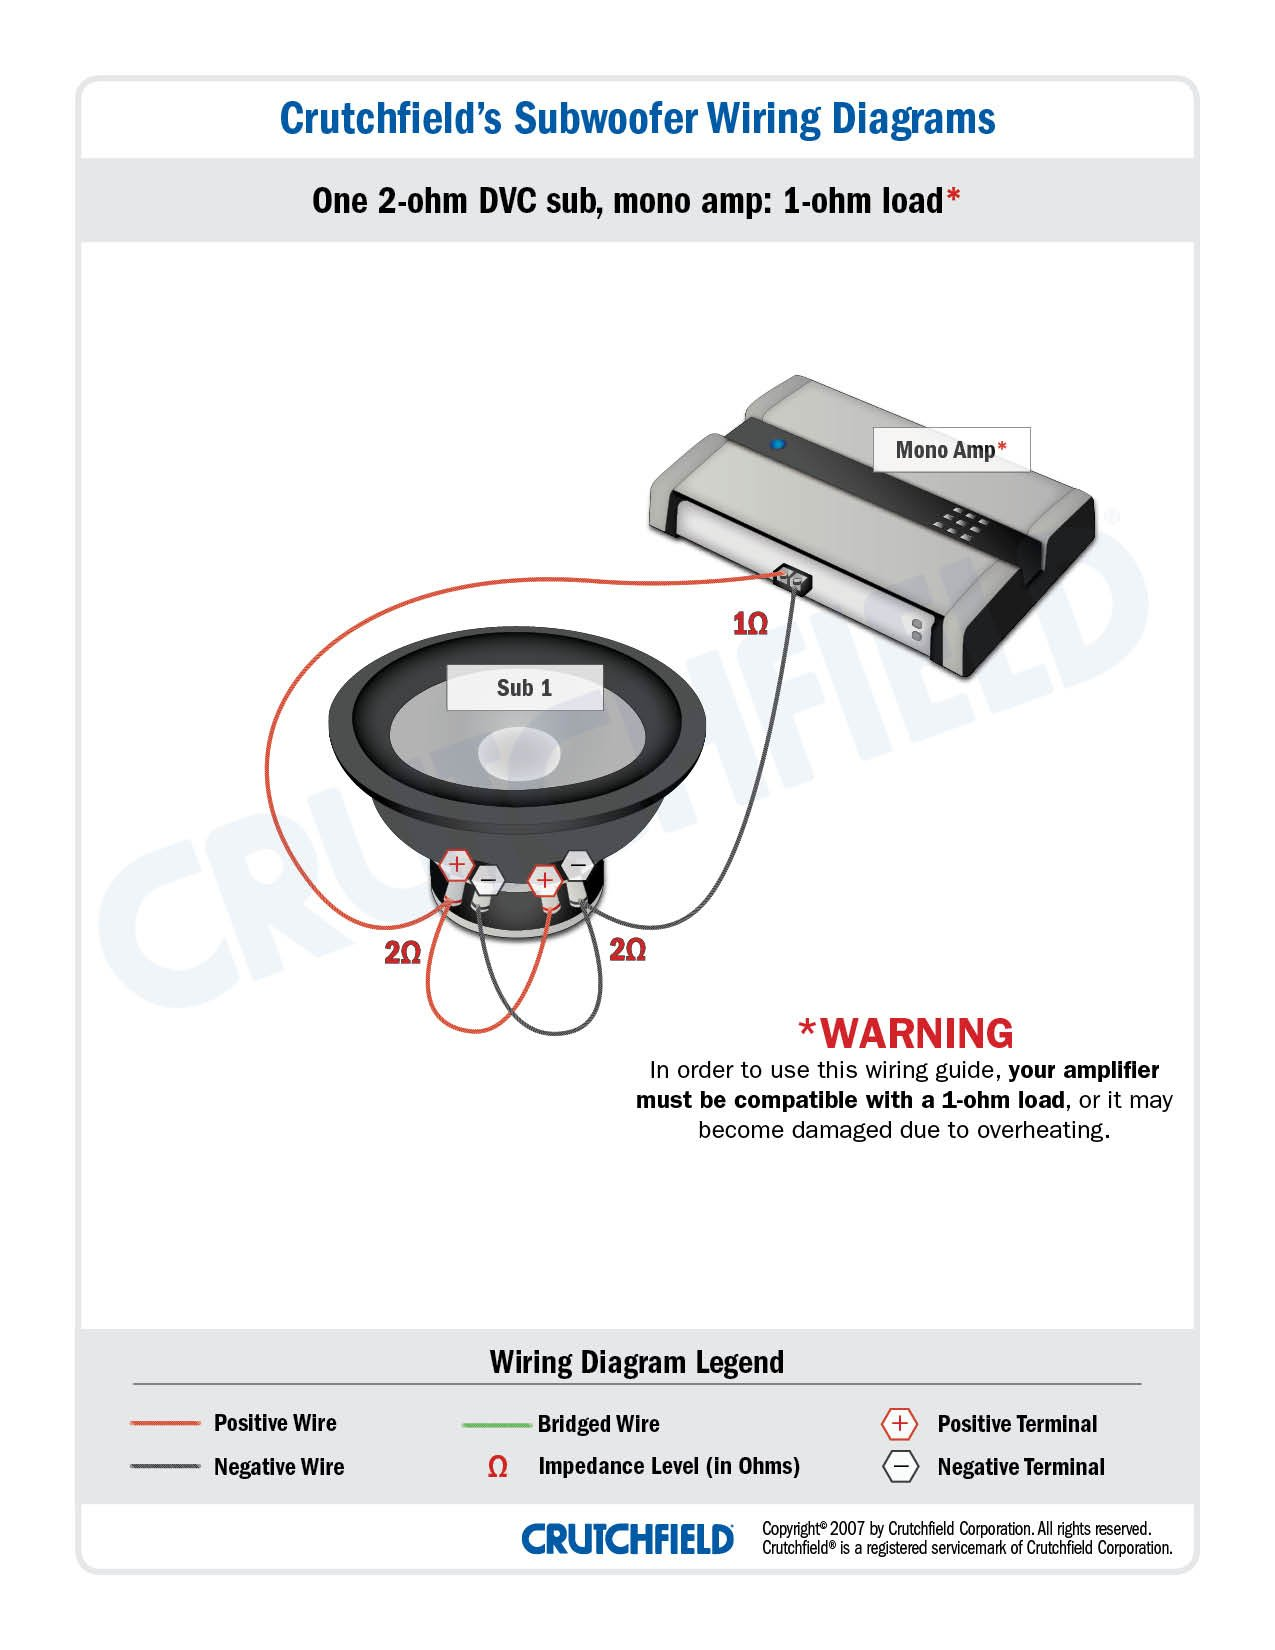 Power Supply For Car Amp In House : power, supply, house, Step-by-step, Instructions, Wiring, Amplifier